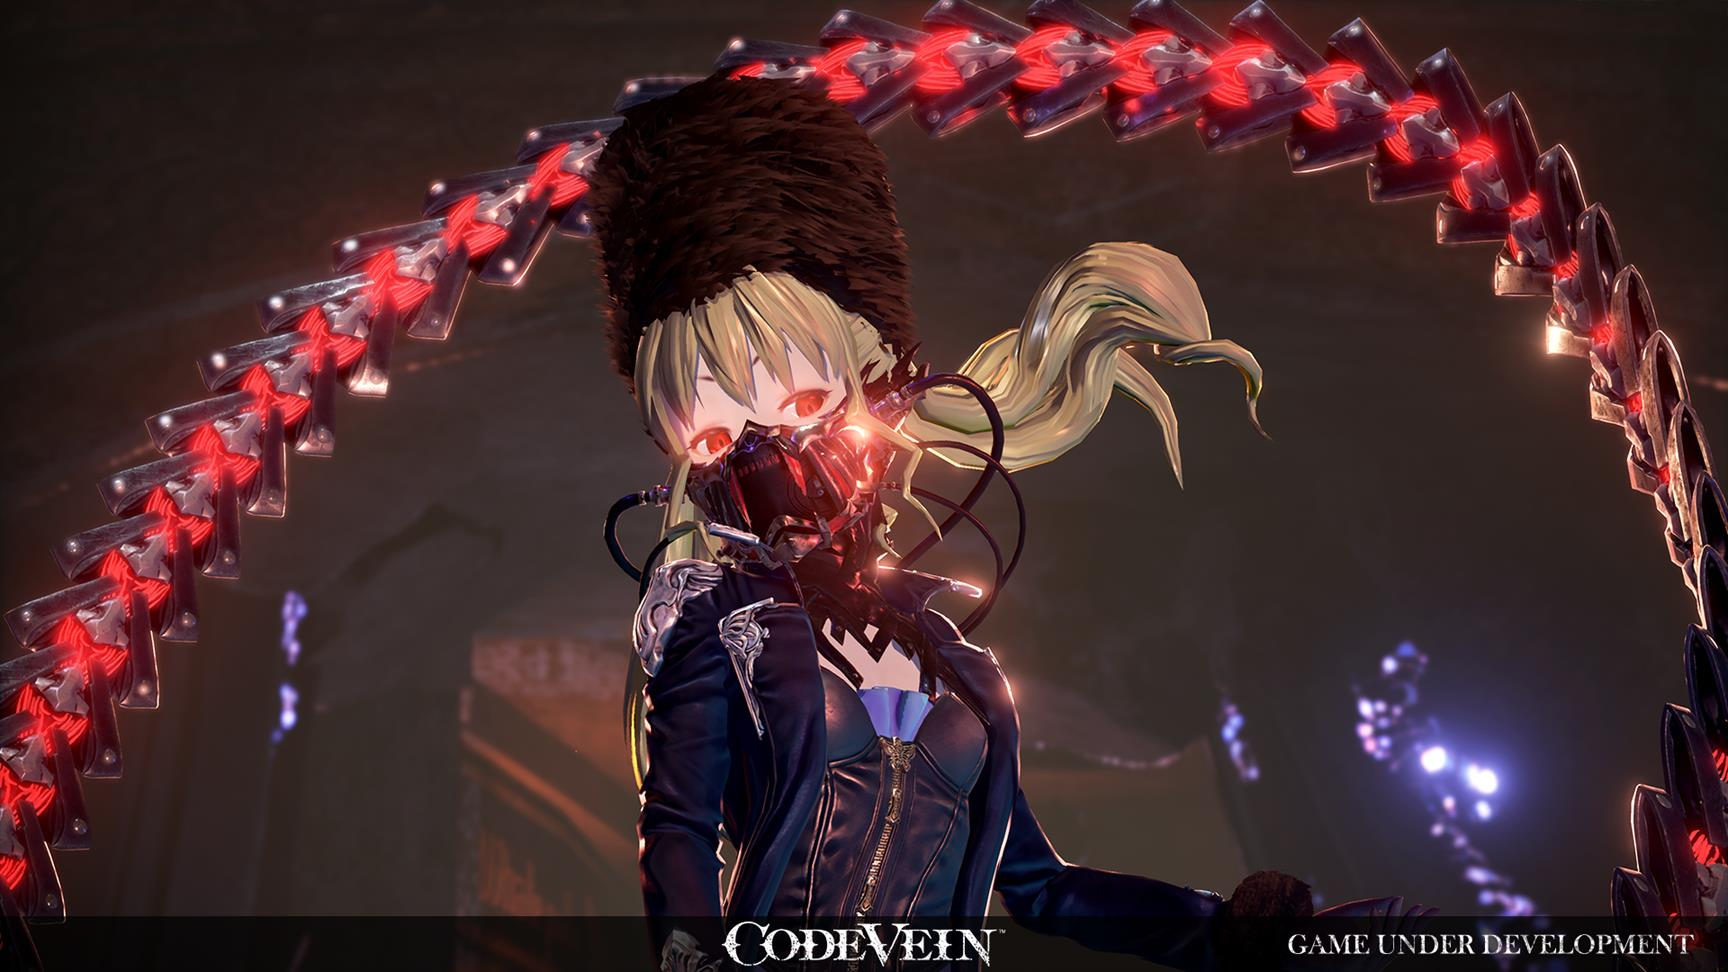 Fantasy rpg wallpaper share online - Namco Officially Unveils New Action Rpg Code Vein First